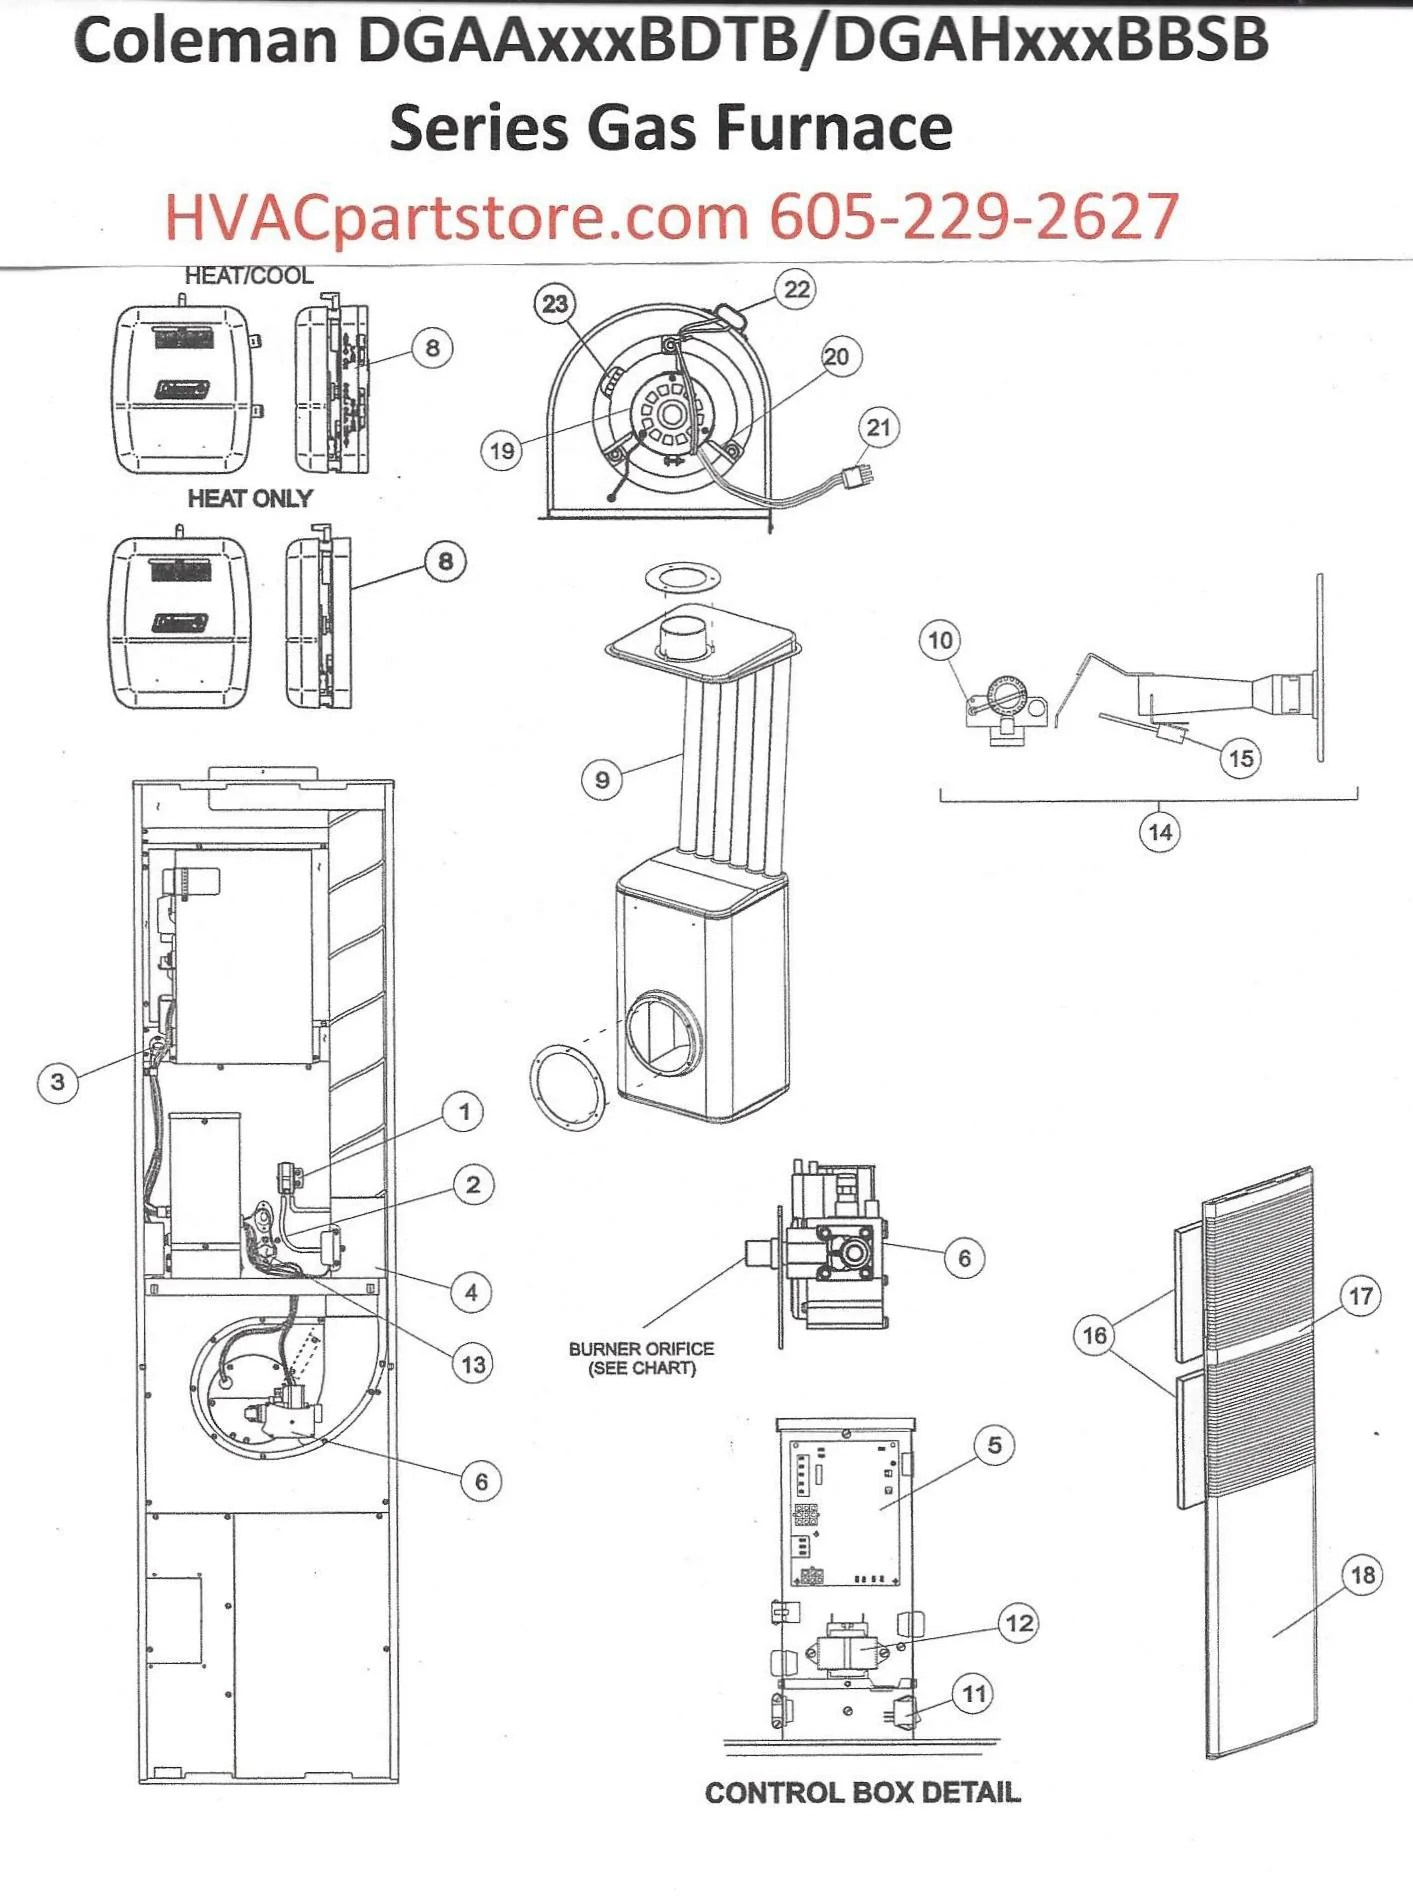 click here to view a manual for the dgaa070bdtb which includes wiring diagrams  [ 1413 x 1903 Pixel ]